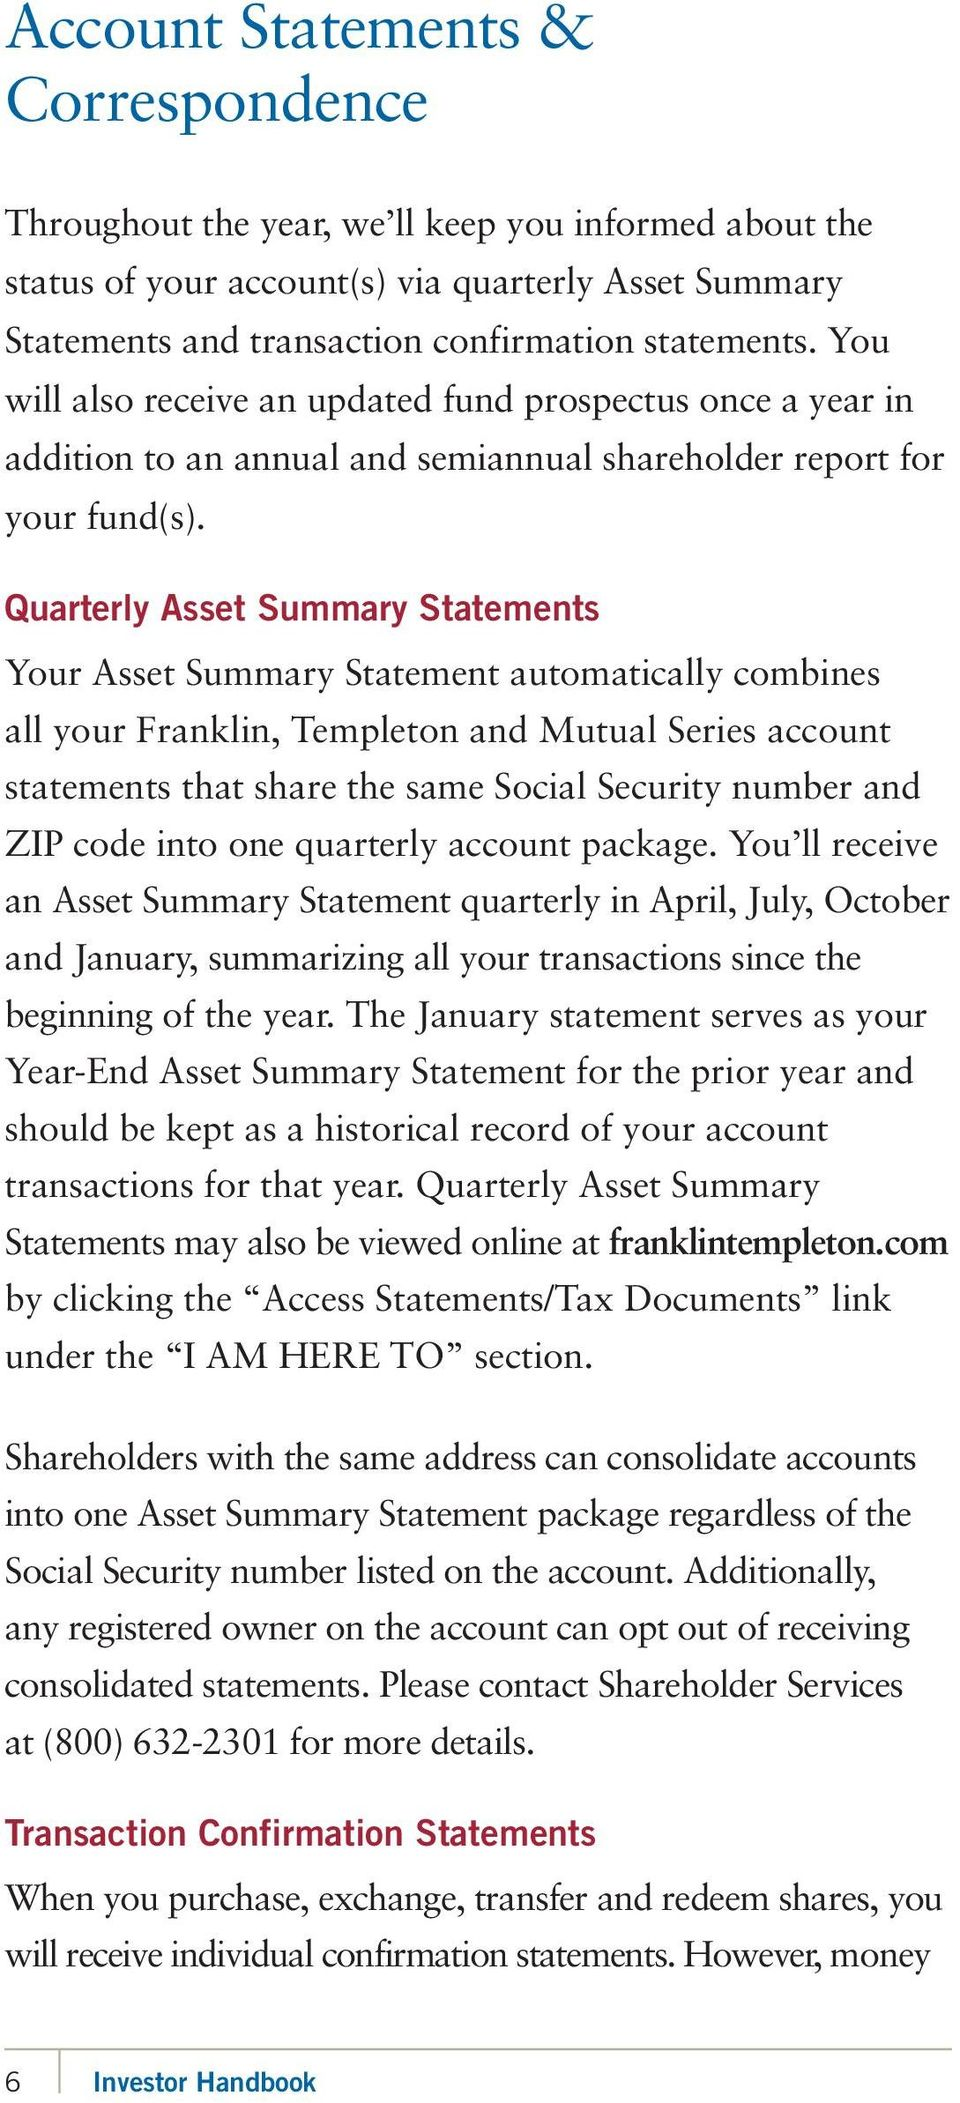 Quarterly Asset Summary Statements Your Asset Summary Statement automatically combines all your Franklin, Templeton and Mutual Series account statements that share the same Social Security number and